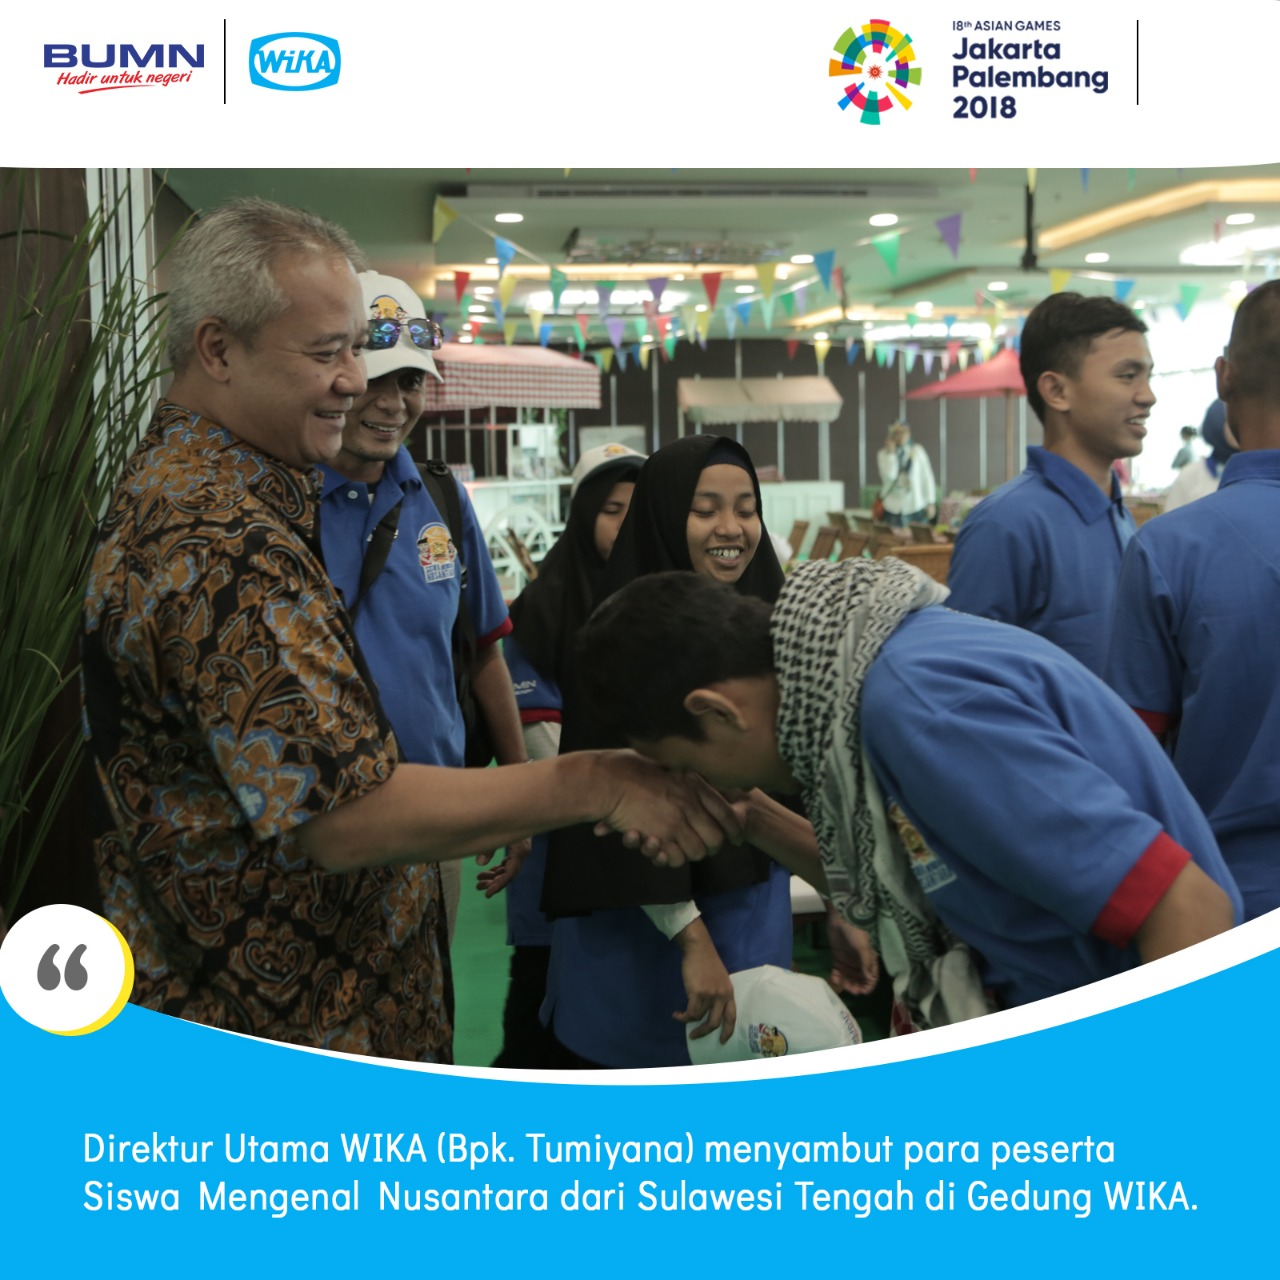 Synergy of WIKA-AirNav Indonesia-BKI with IPC officially launched Siswa Mengenal Nusantara Sulteng-B